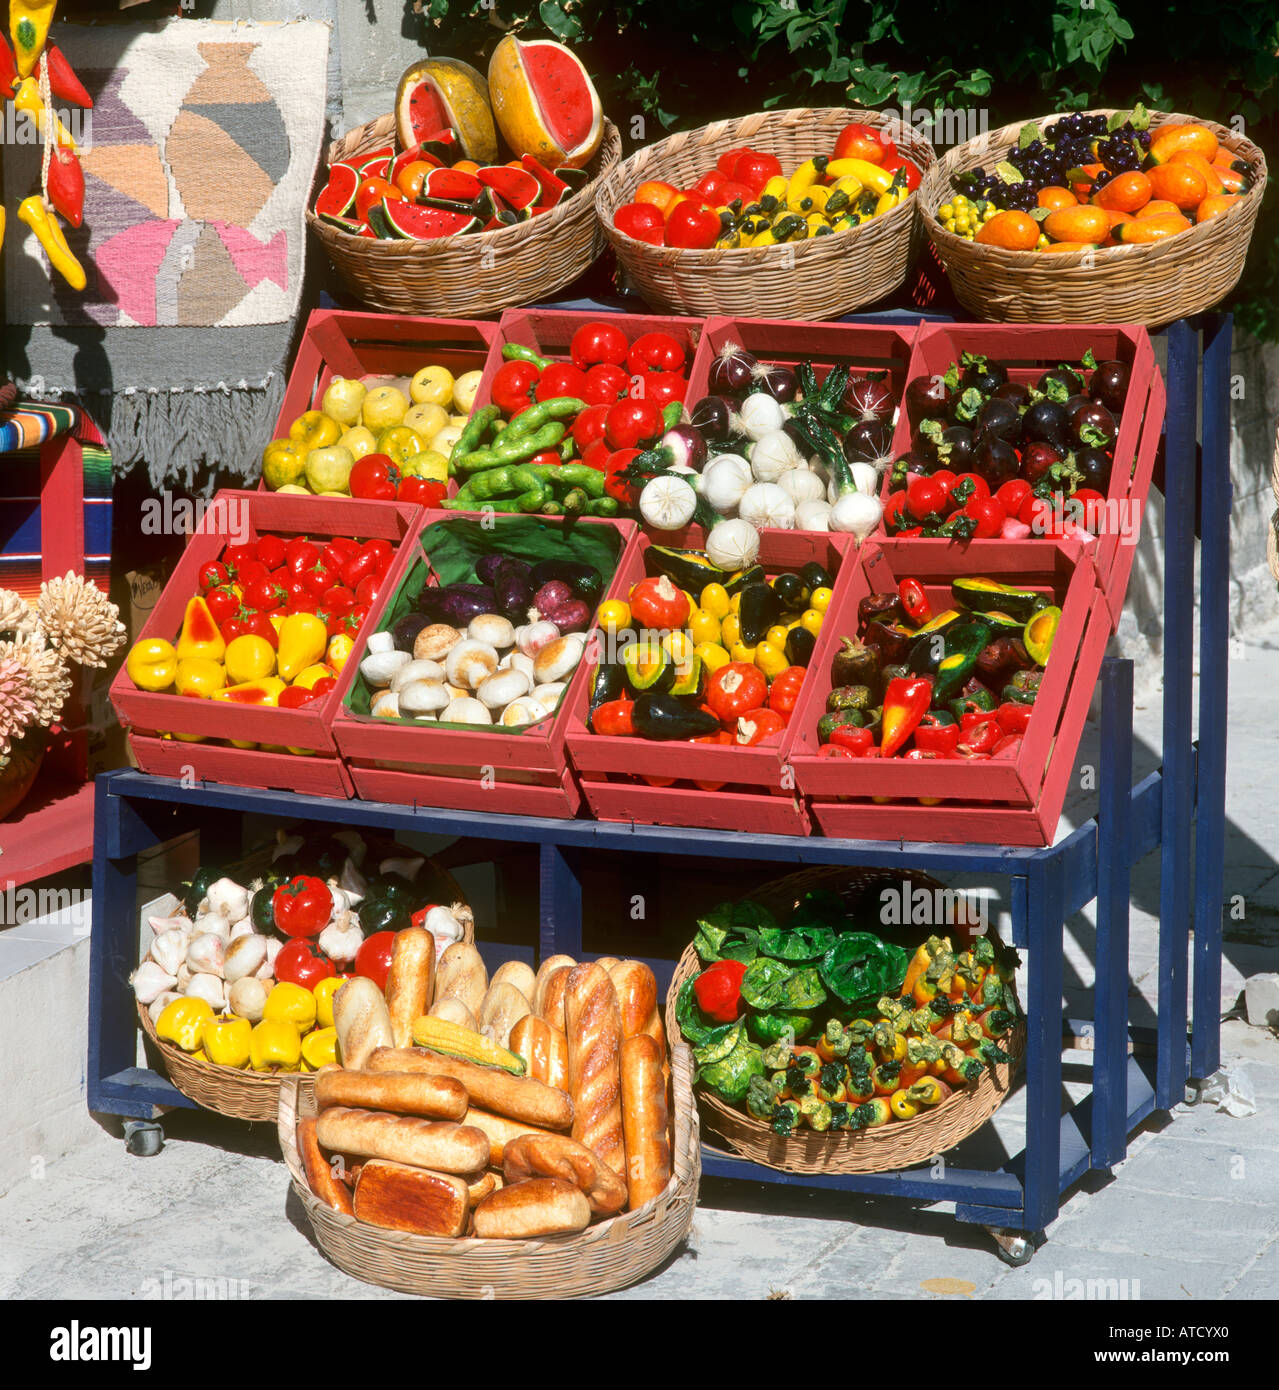 Artificial Fruit And Vegetables, Playa Del Carmen, Mayan Riviera, Quintana  Roo, Yucatan Peninsula, Mexico